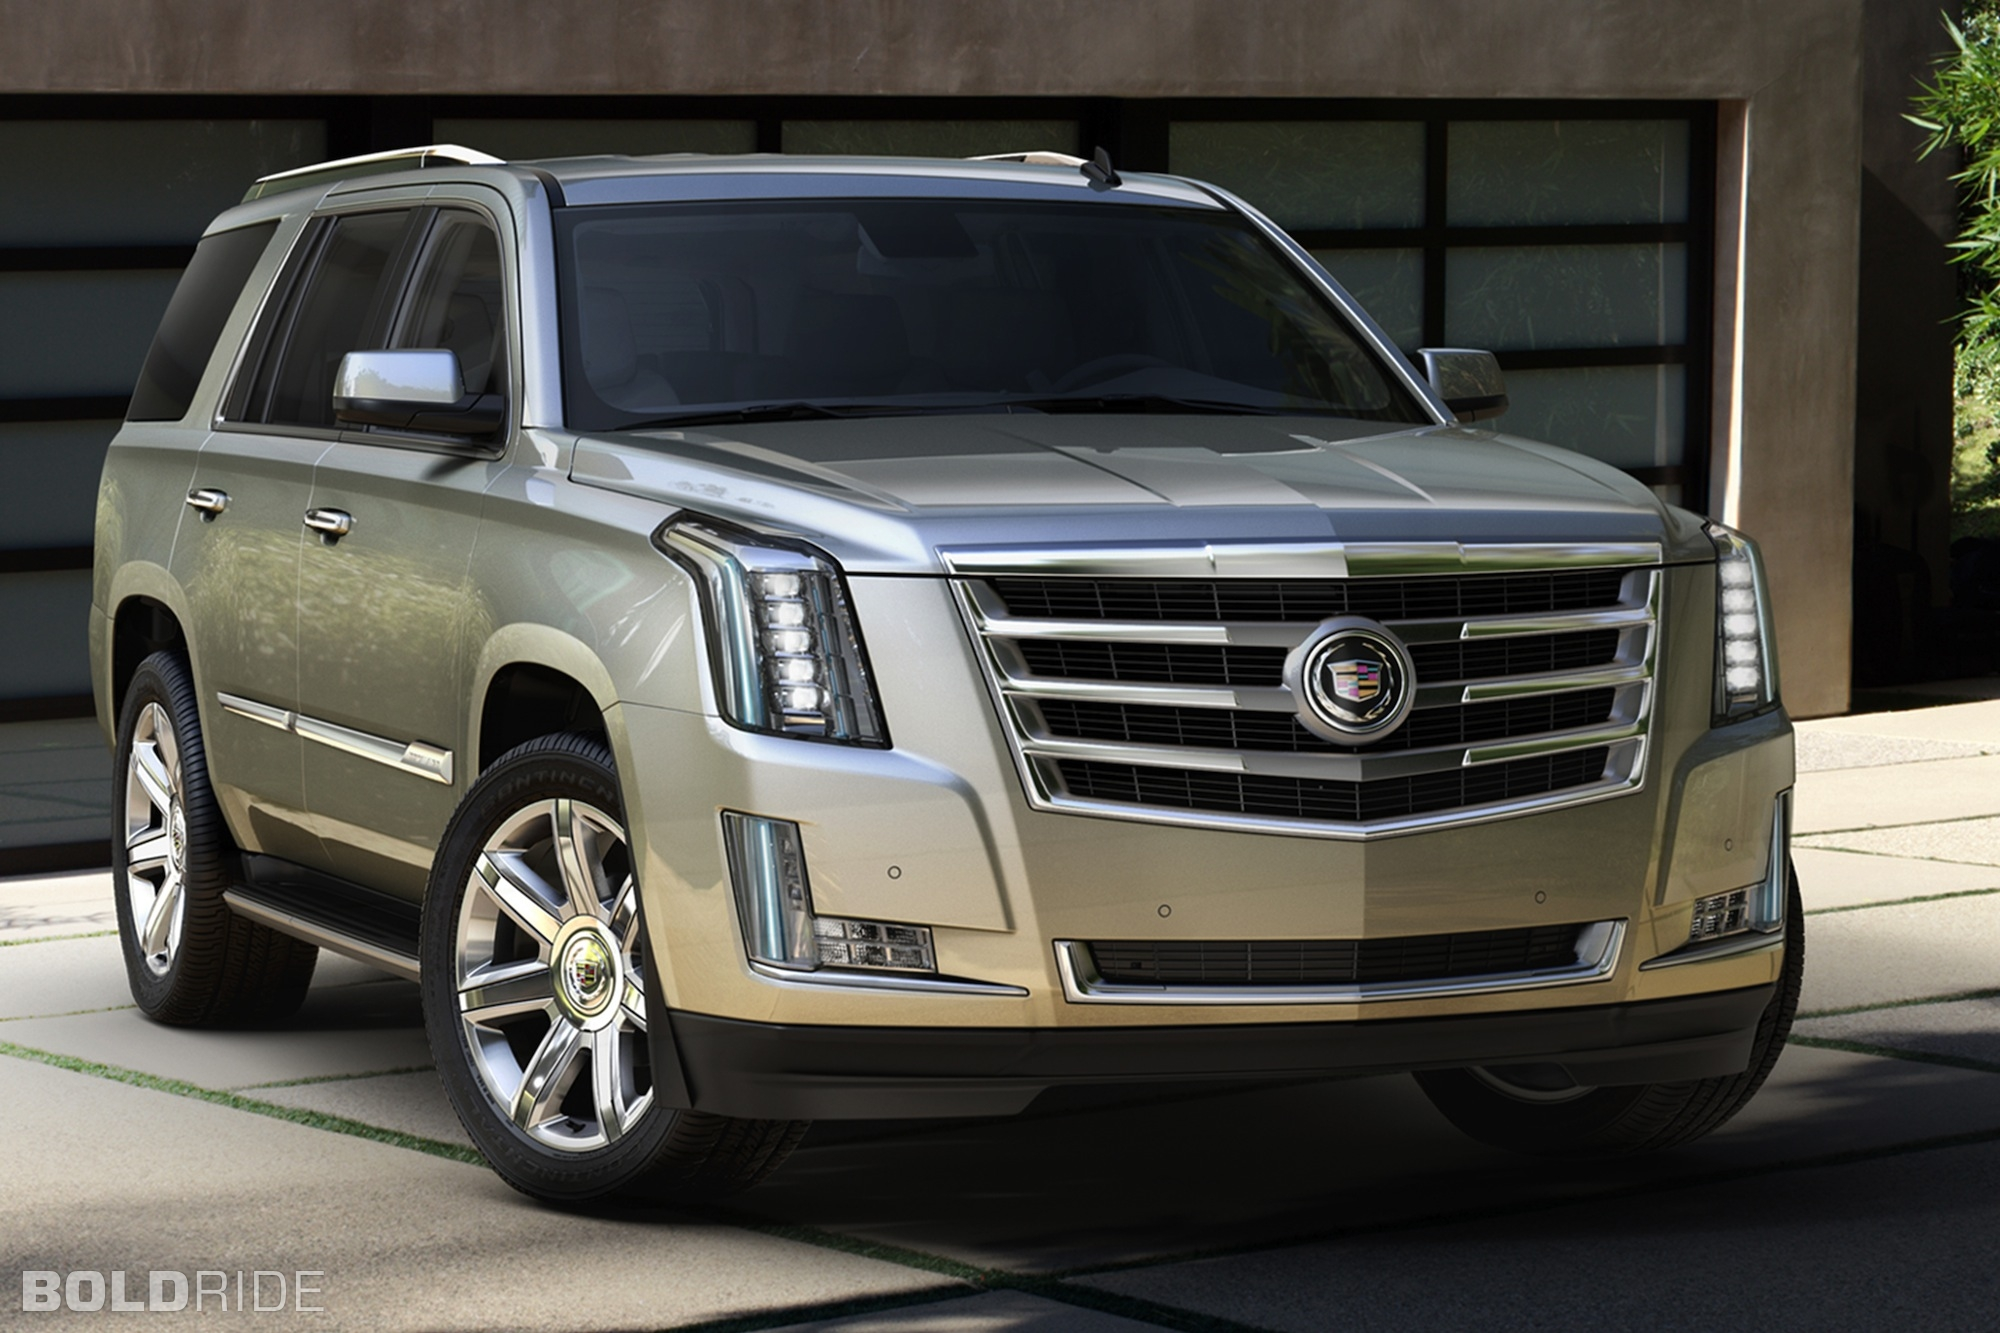 2015 escalade luxury suv cadillac autos post. Black Bedroom Furniture Sets. Home Design Ideas